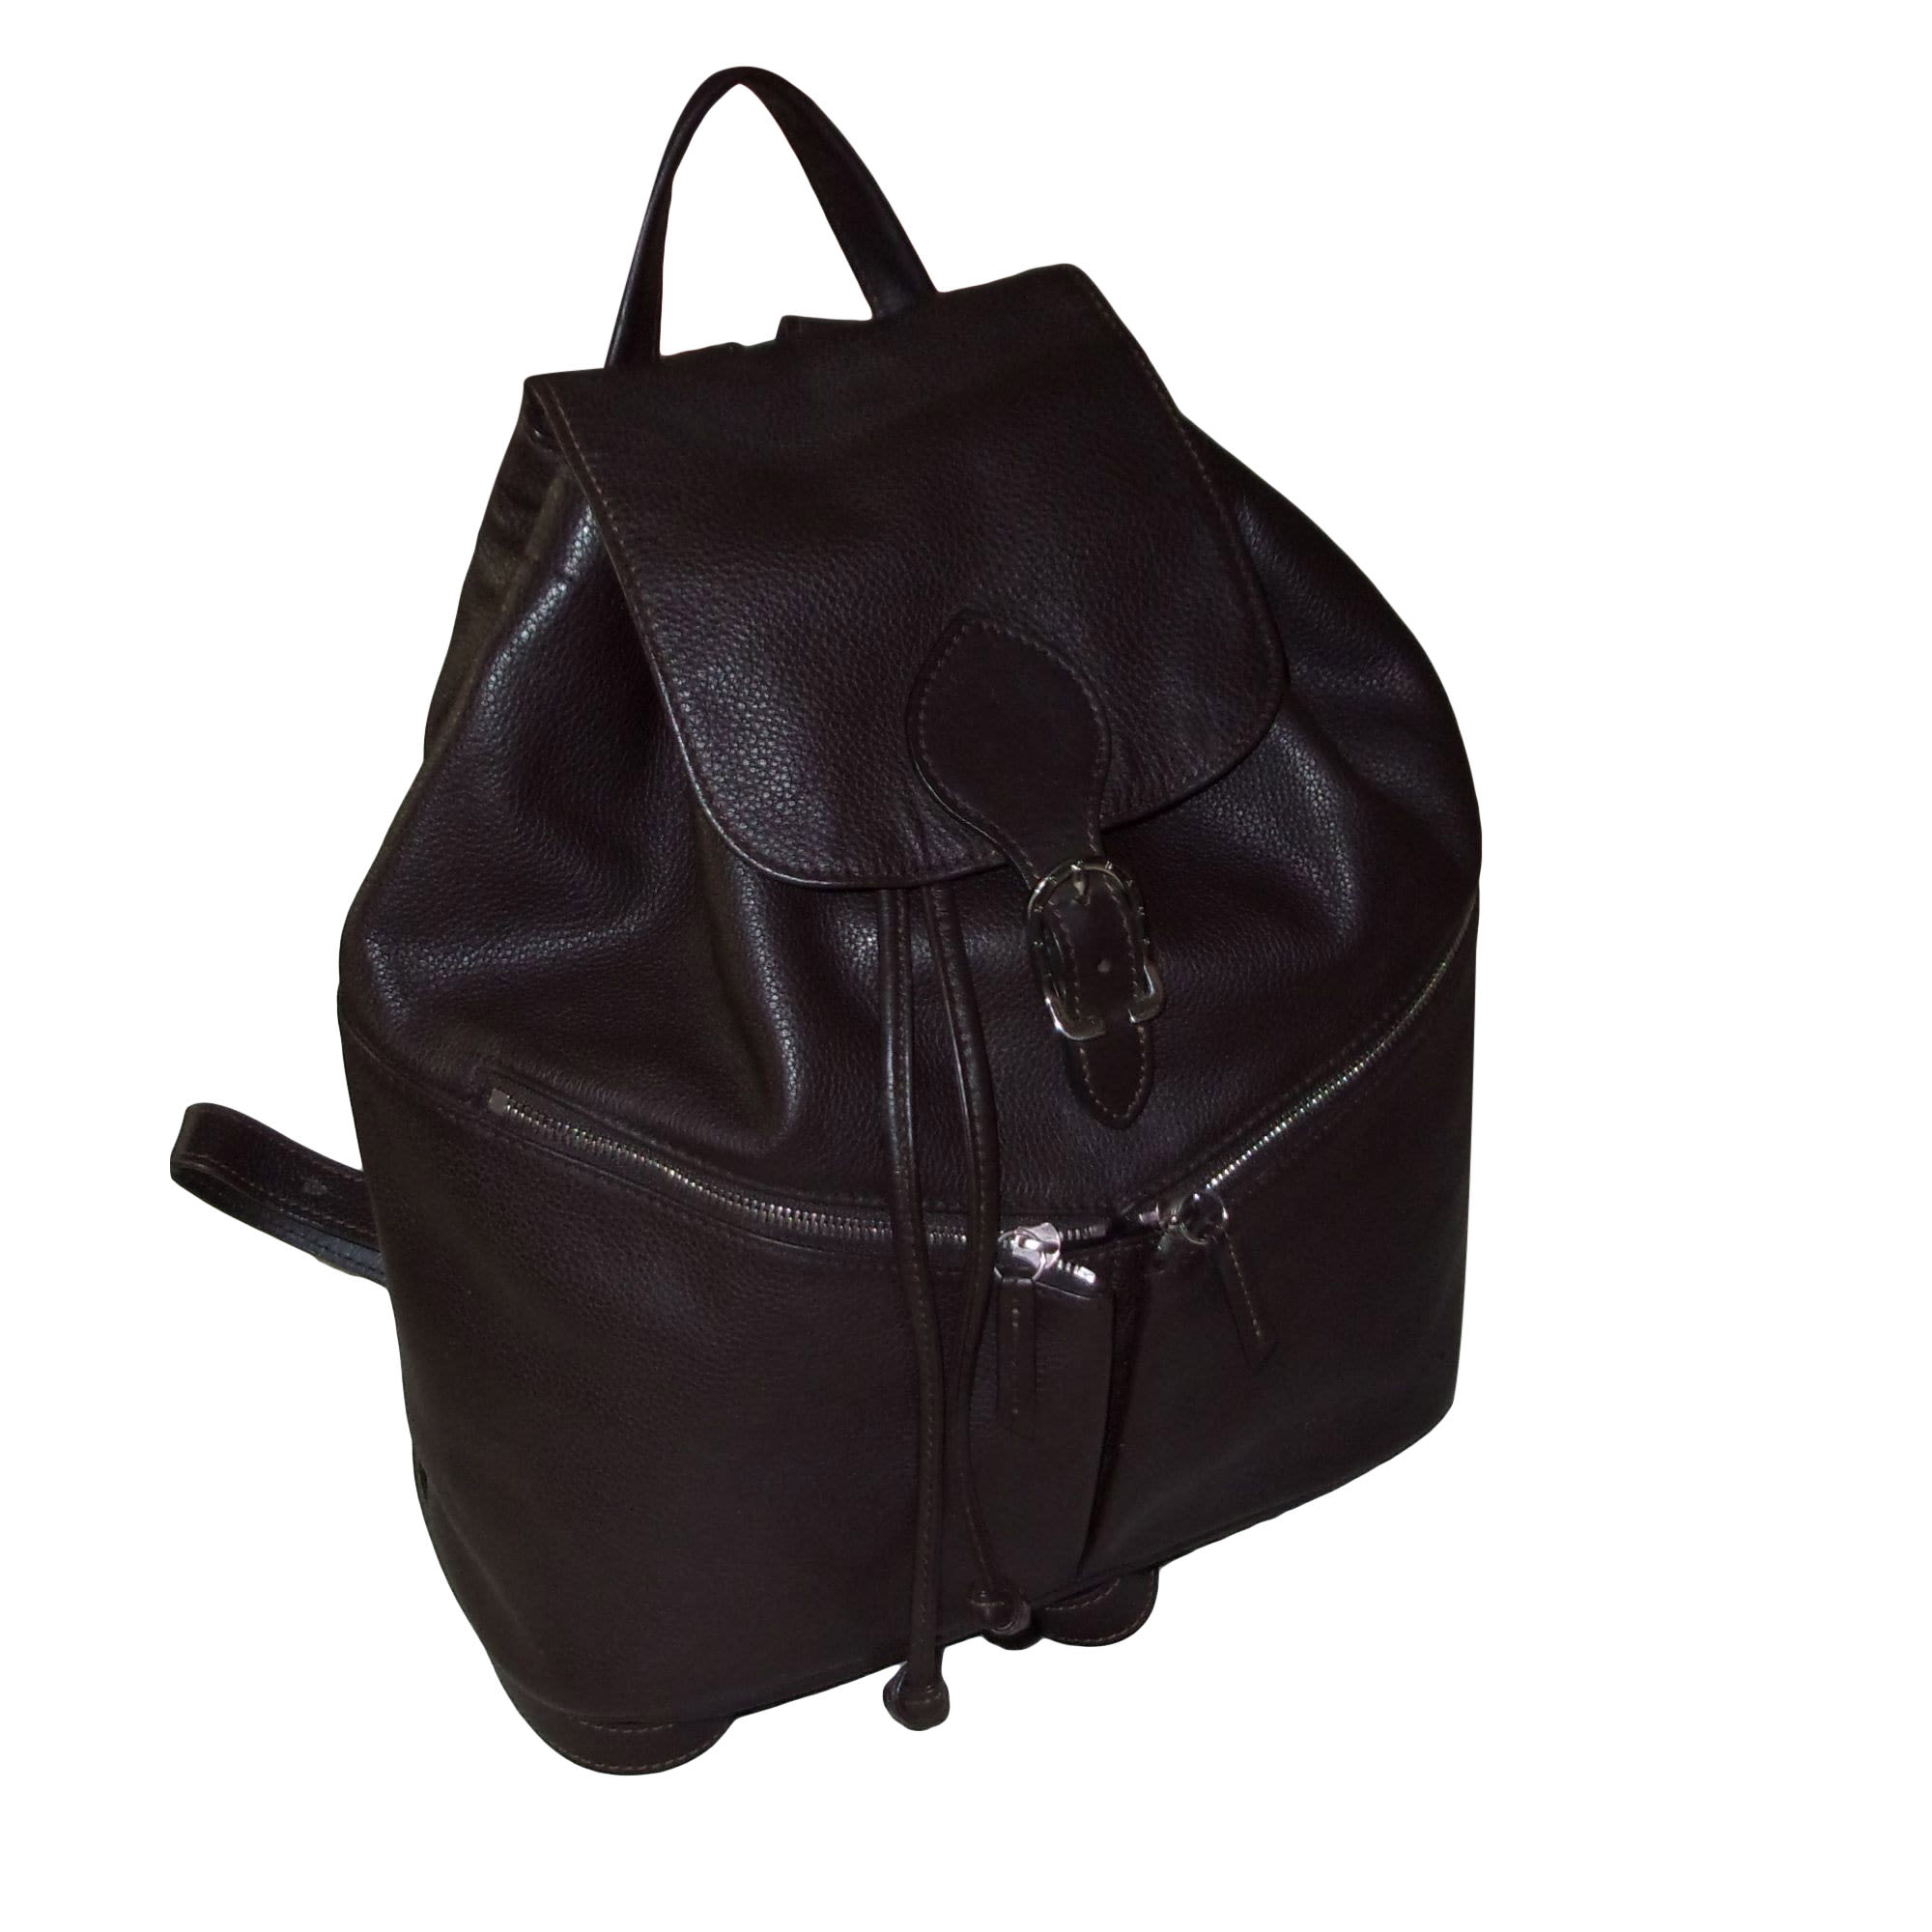 Backpack LONGCHAMP Brown